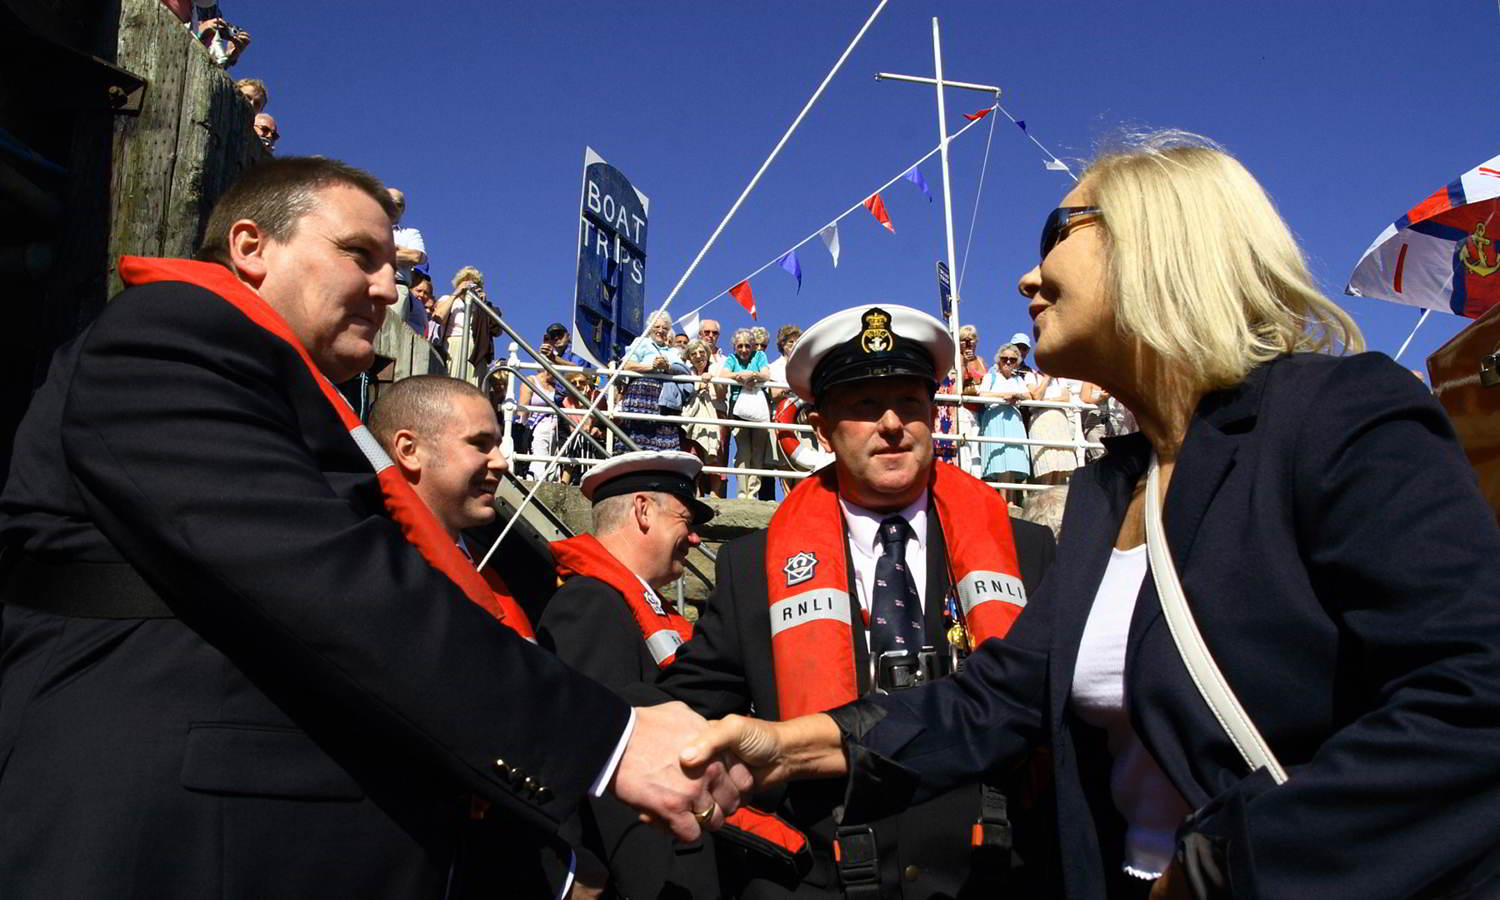 Meeting The Lifeboat Crew